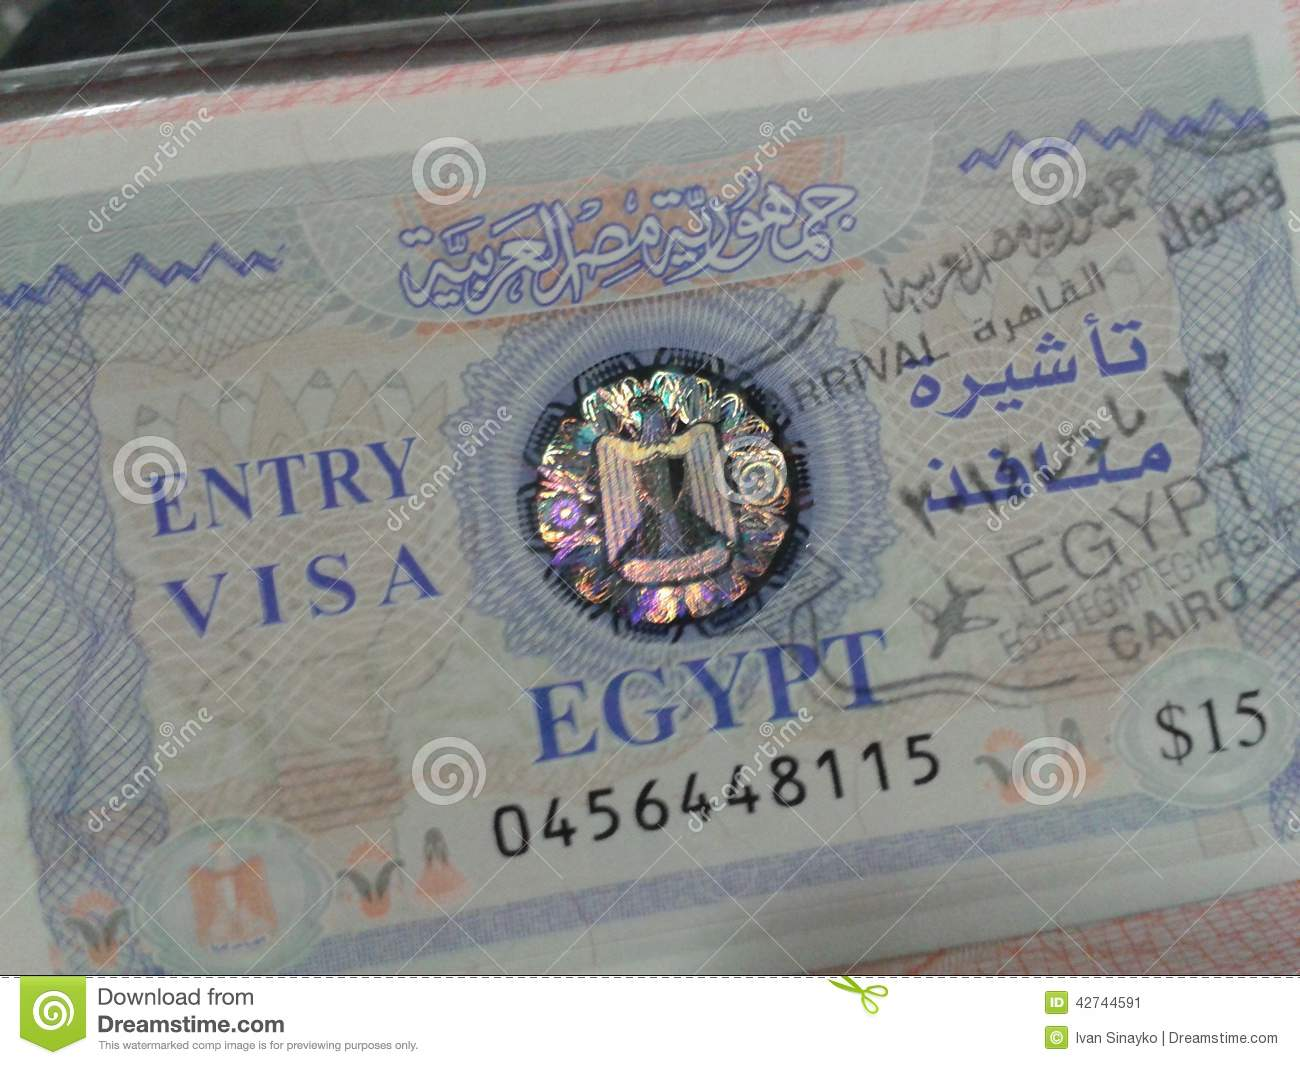 how to get an egyptian passport